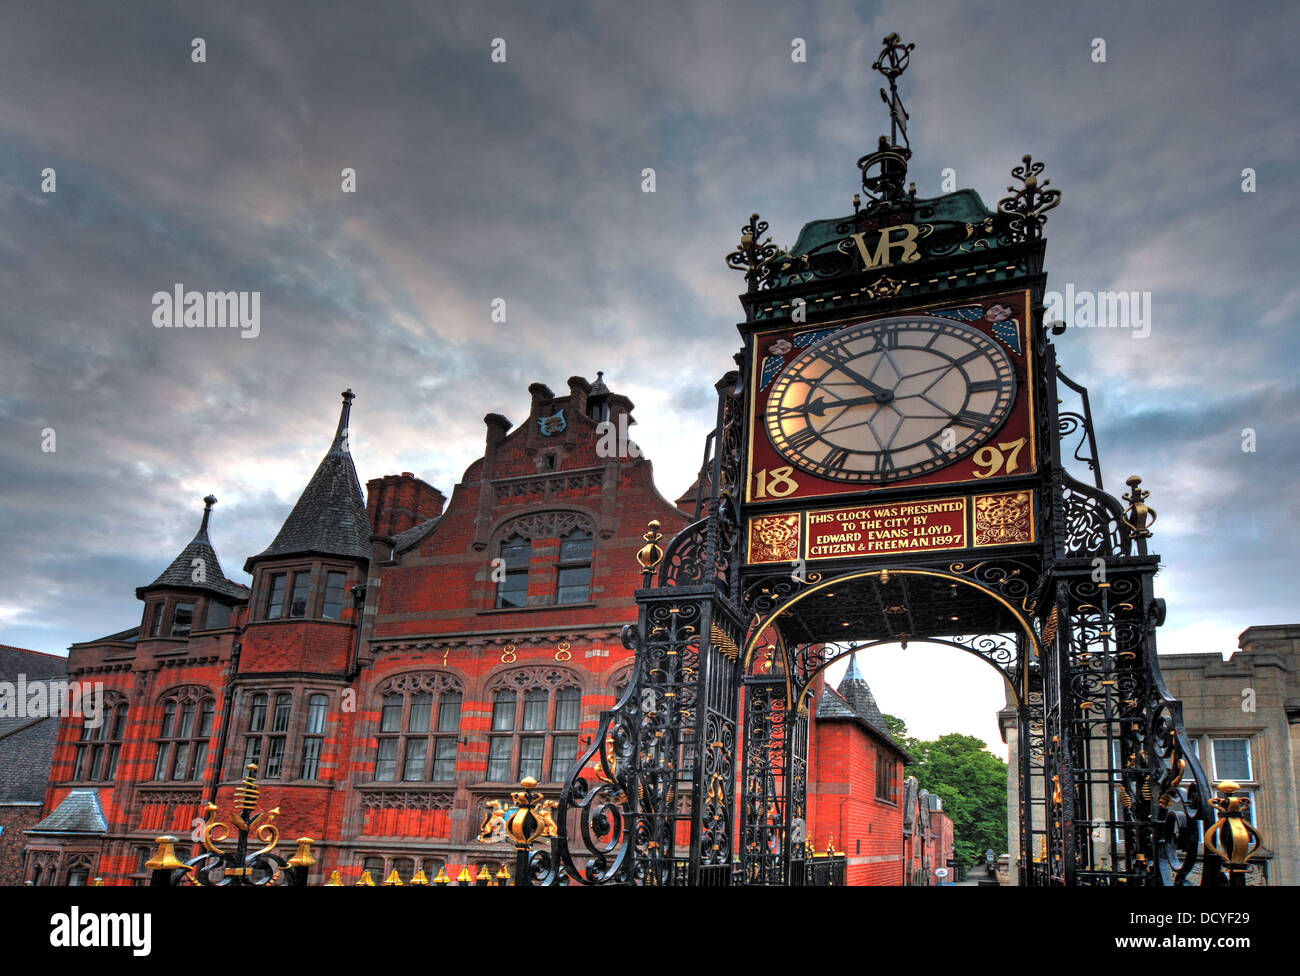 The Eastgate clock, East Gate Chester , Cheshire, England UK - Stock Image